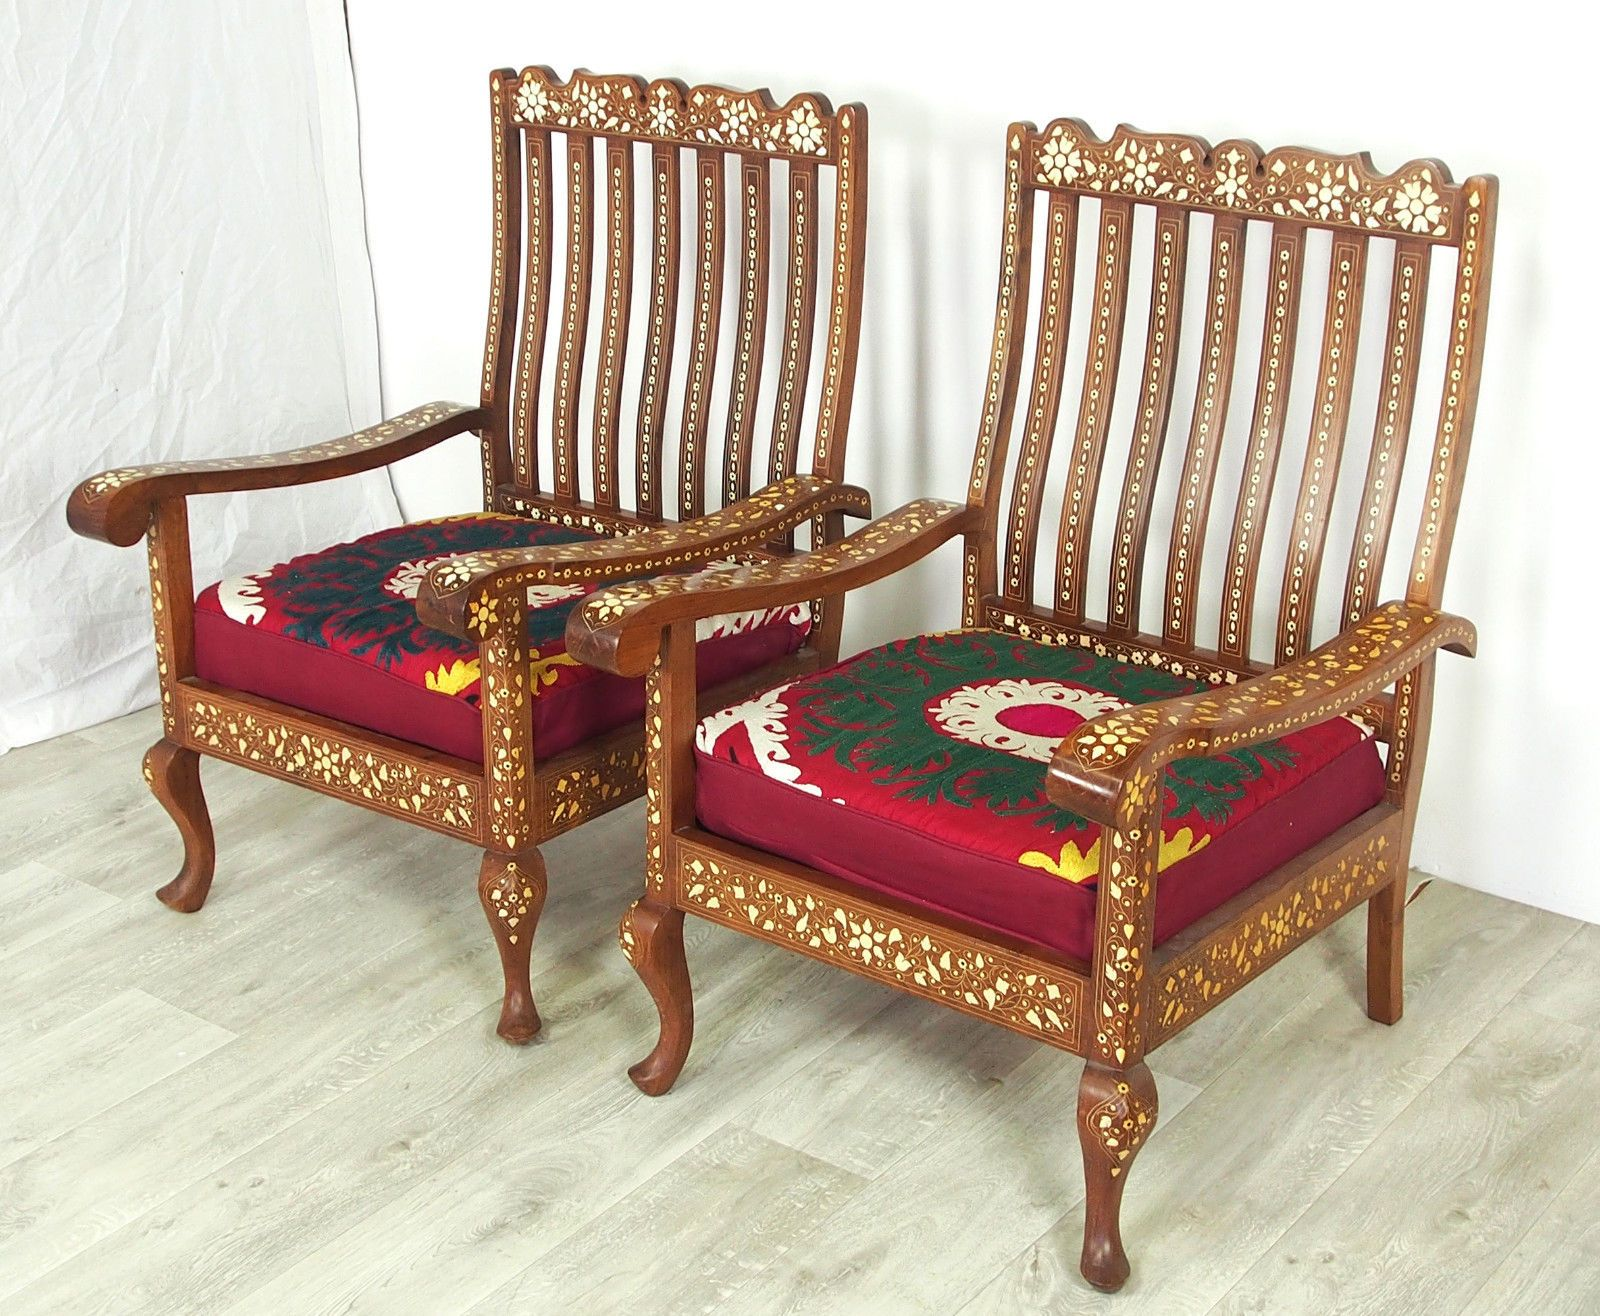 Ebay Sessel Antik Antik 3 Teilige Indian Anglo Couch Garnitur Sofagarnitur Sessel